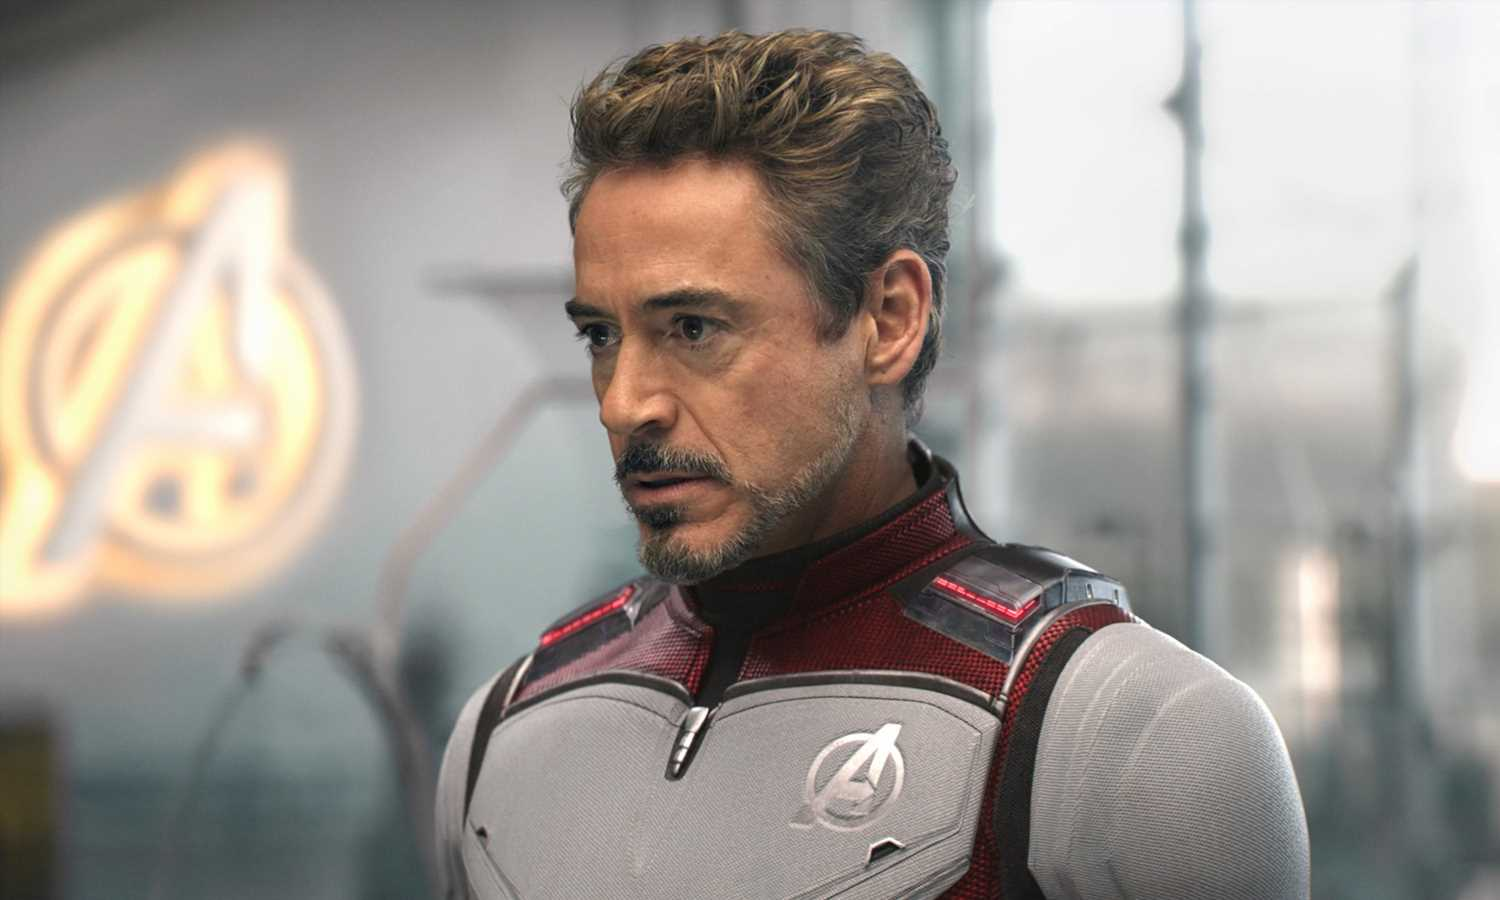 Robert Downey Jr. jokes about being arrested at Disneyland 'for smoking pot in a gondola'